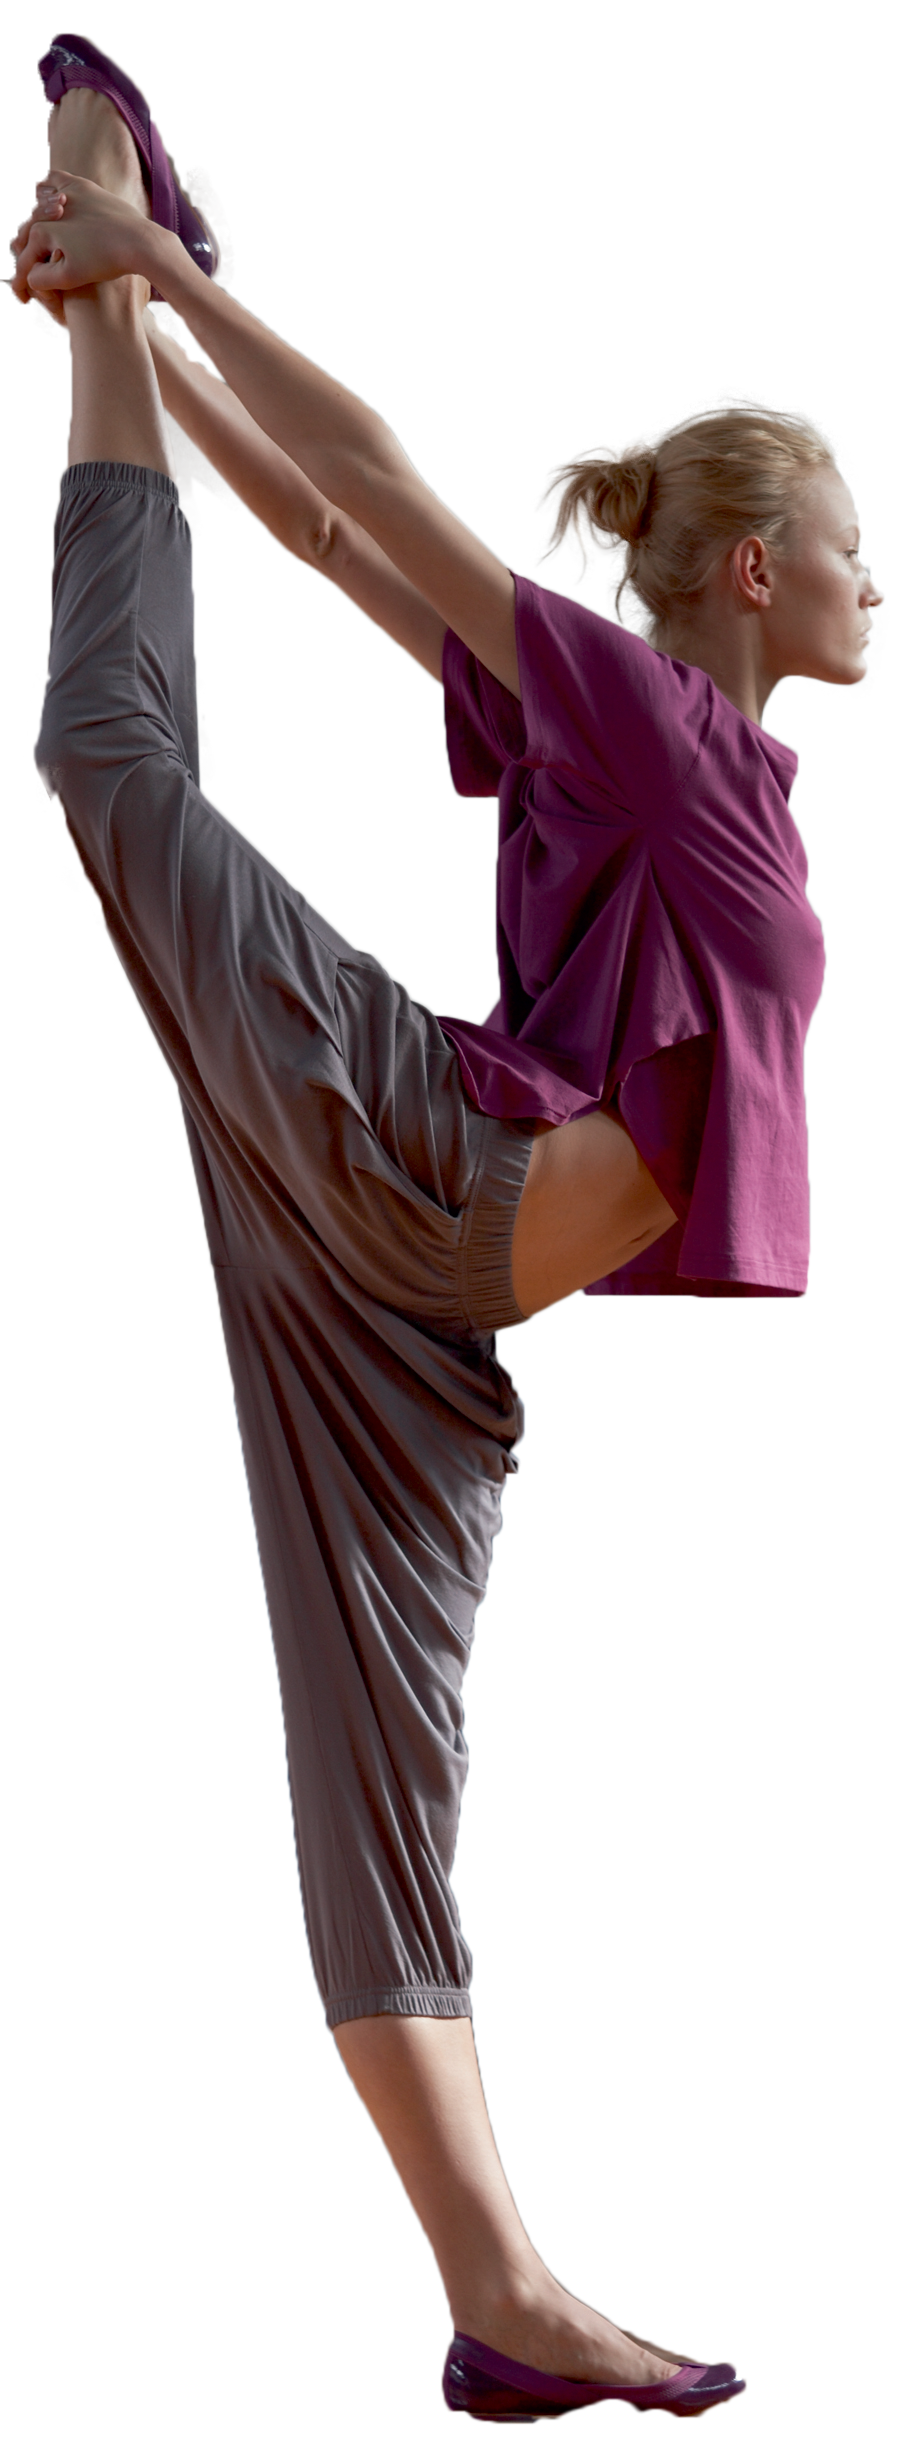 Yoga People Png - woman-yoga   People for Architecture Presentations   People png ...